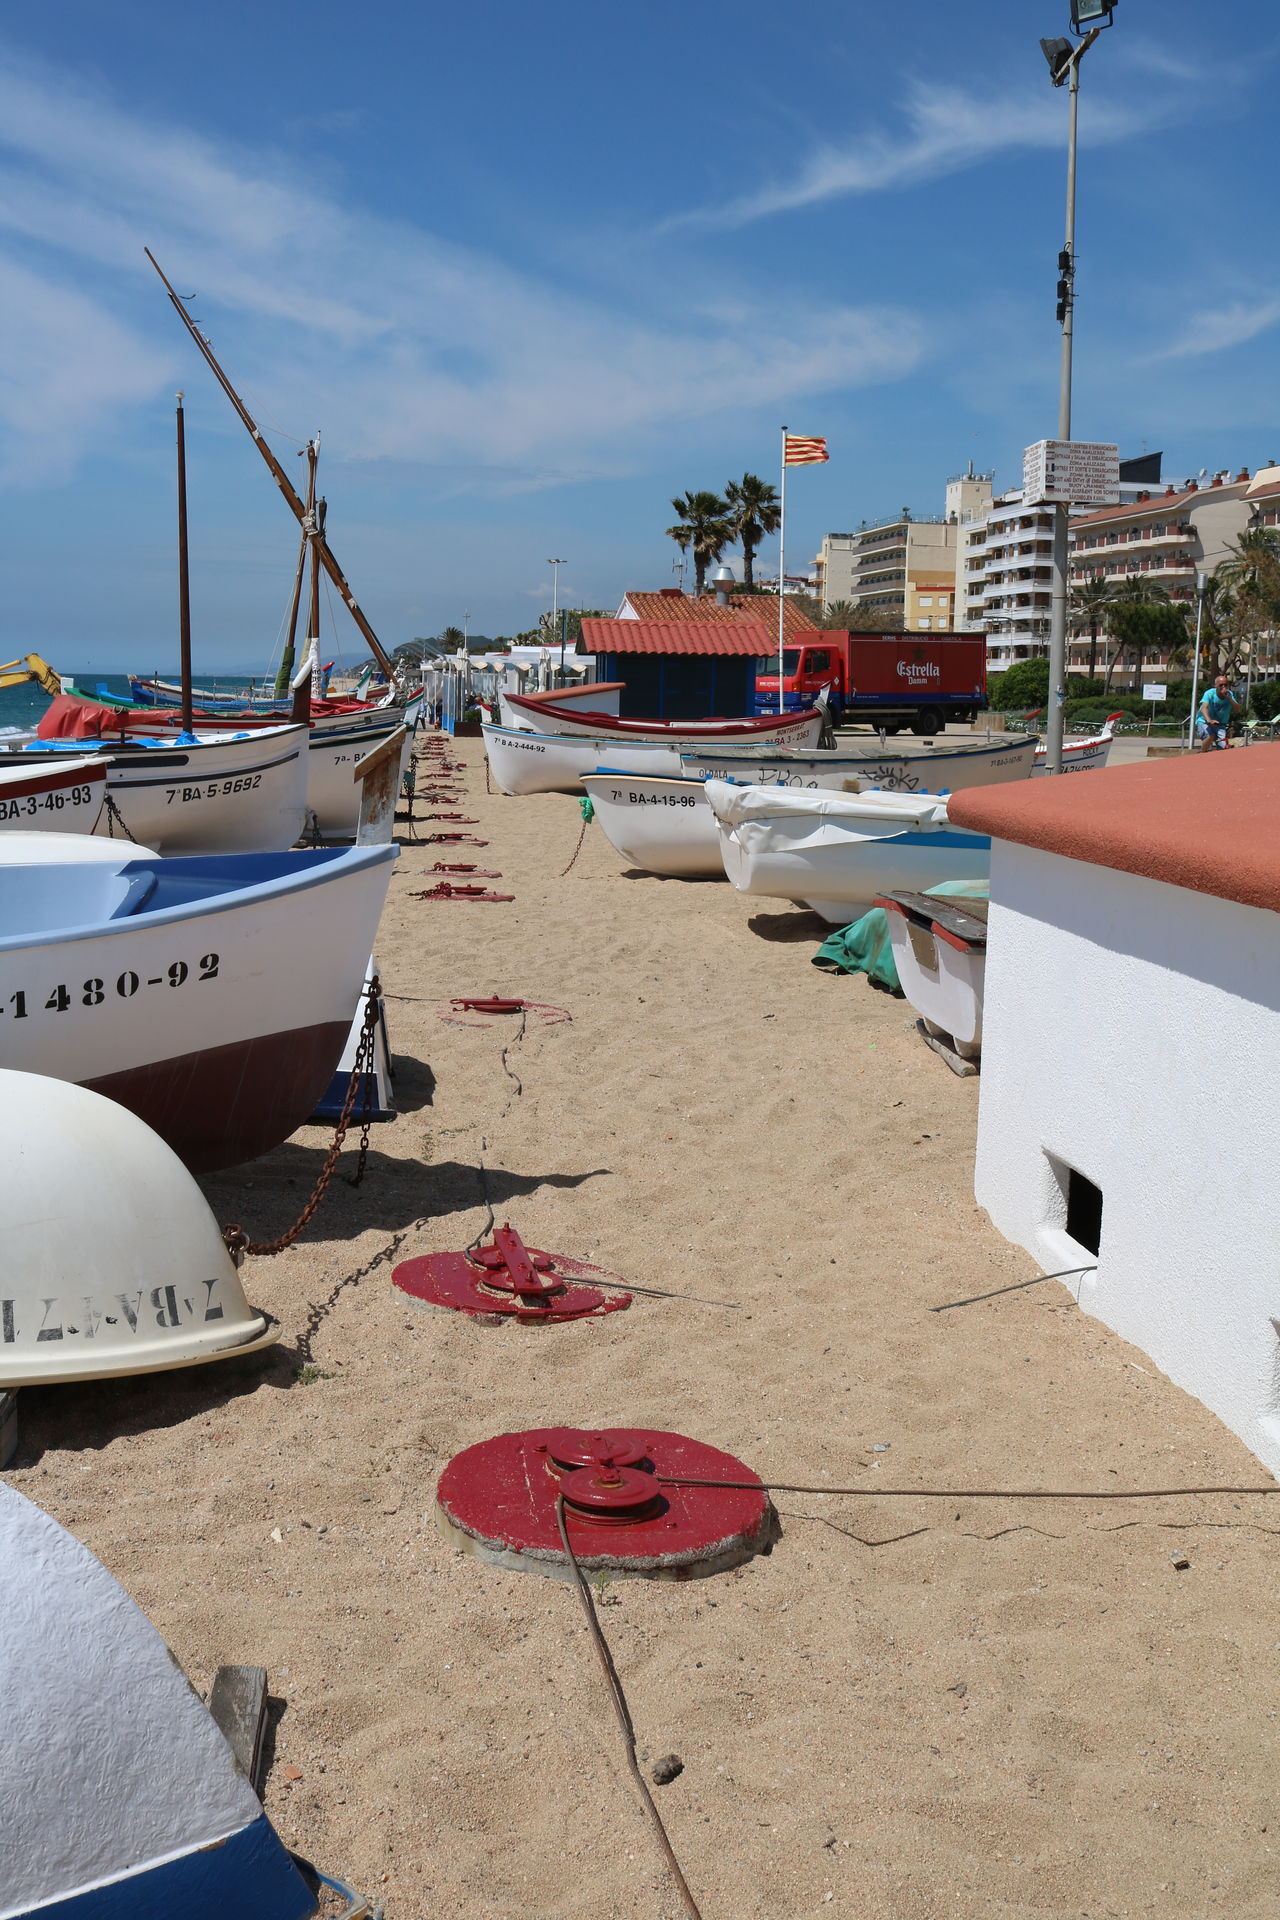 Beach Beachphotography Boats Fishing Boats Flag Flag Pole Huts Sky And Clouds SPAIN